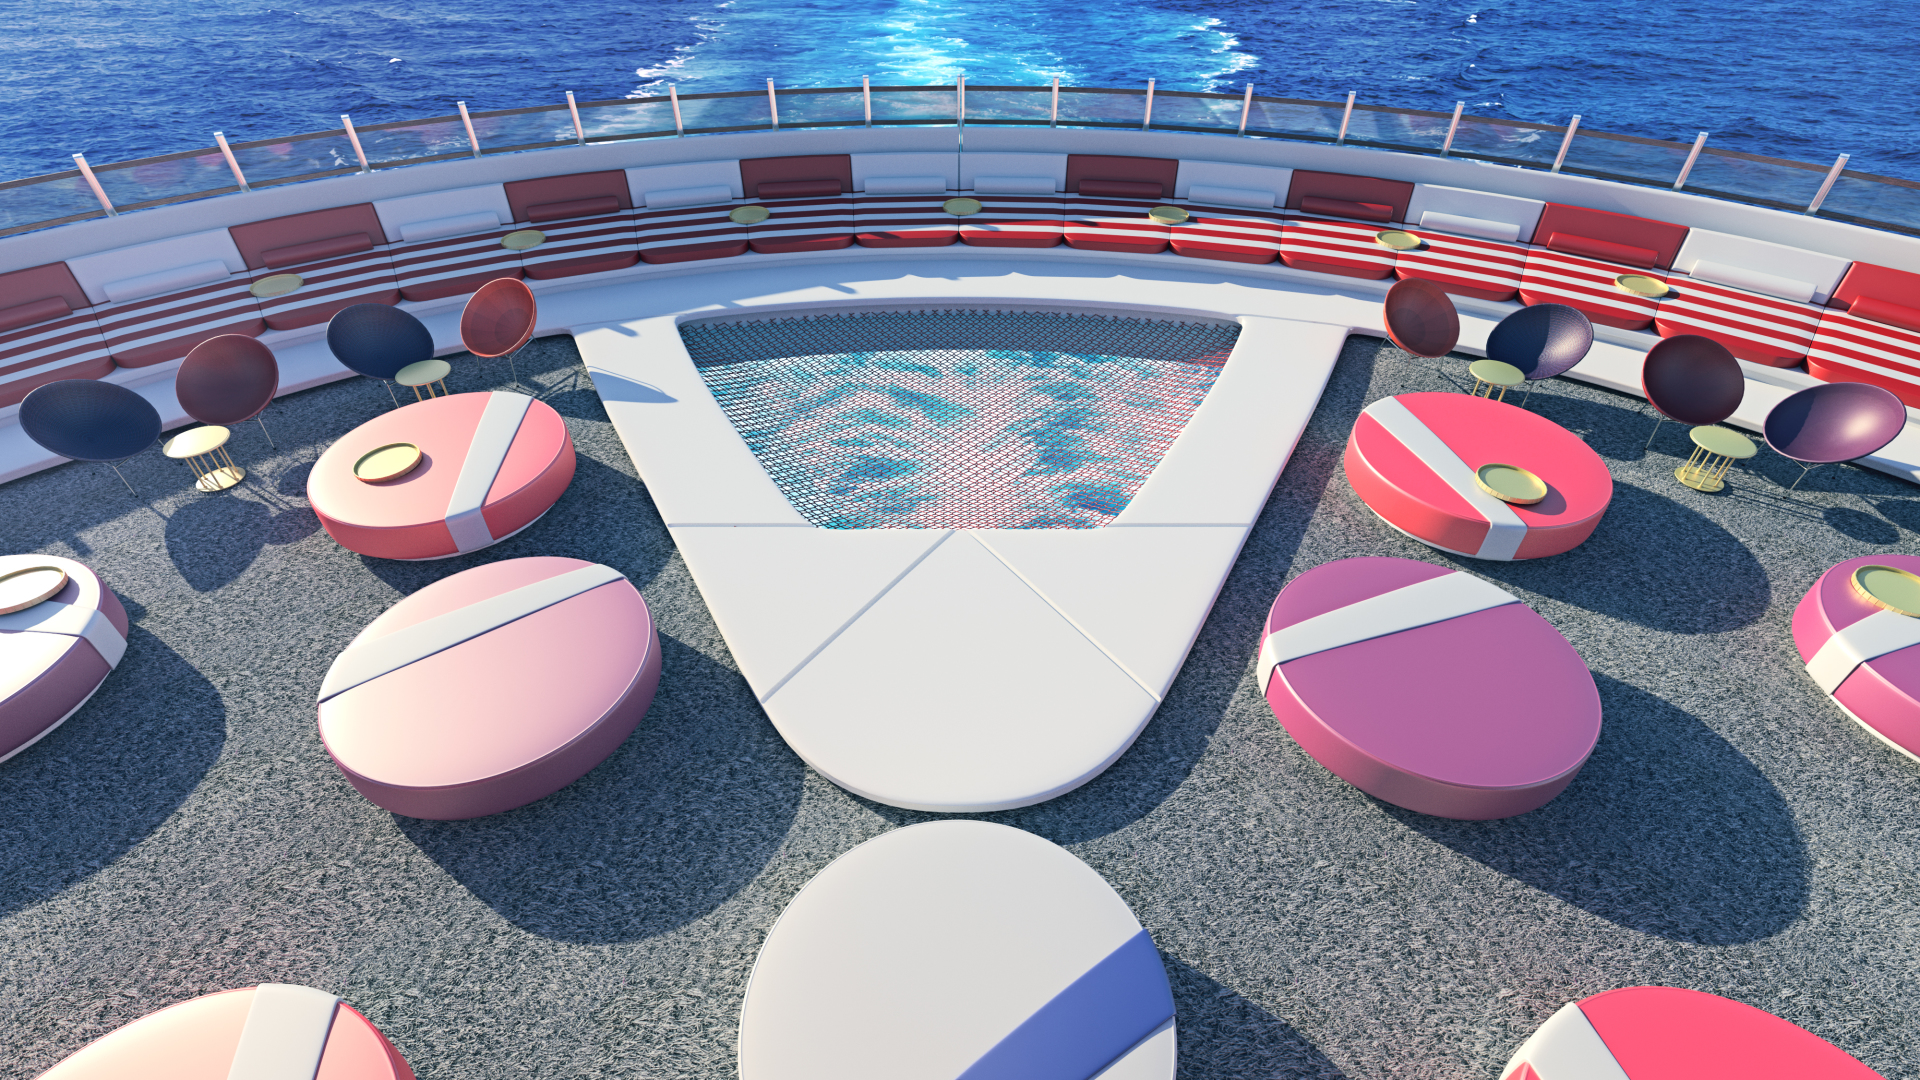 Virgin Voyages_Scarlet Lady_AthleticClub-catamaran-net_Concrete-Amsterdam